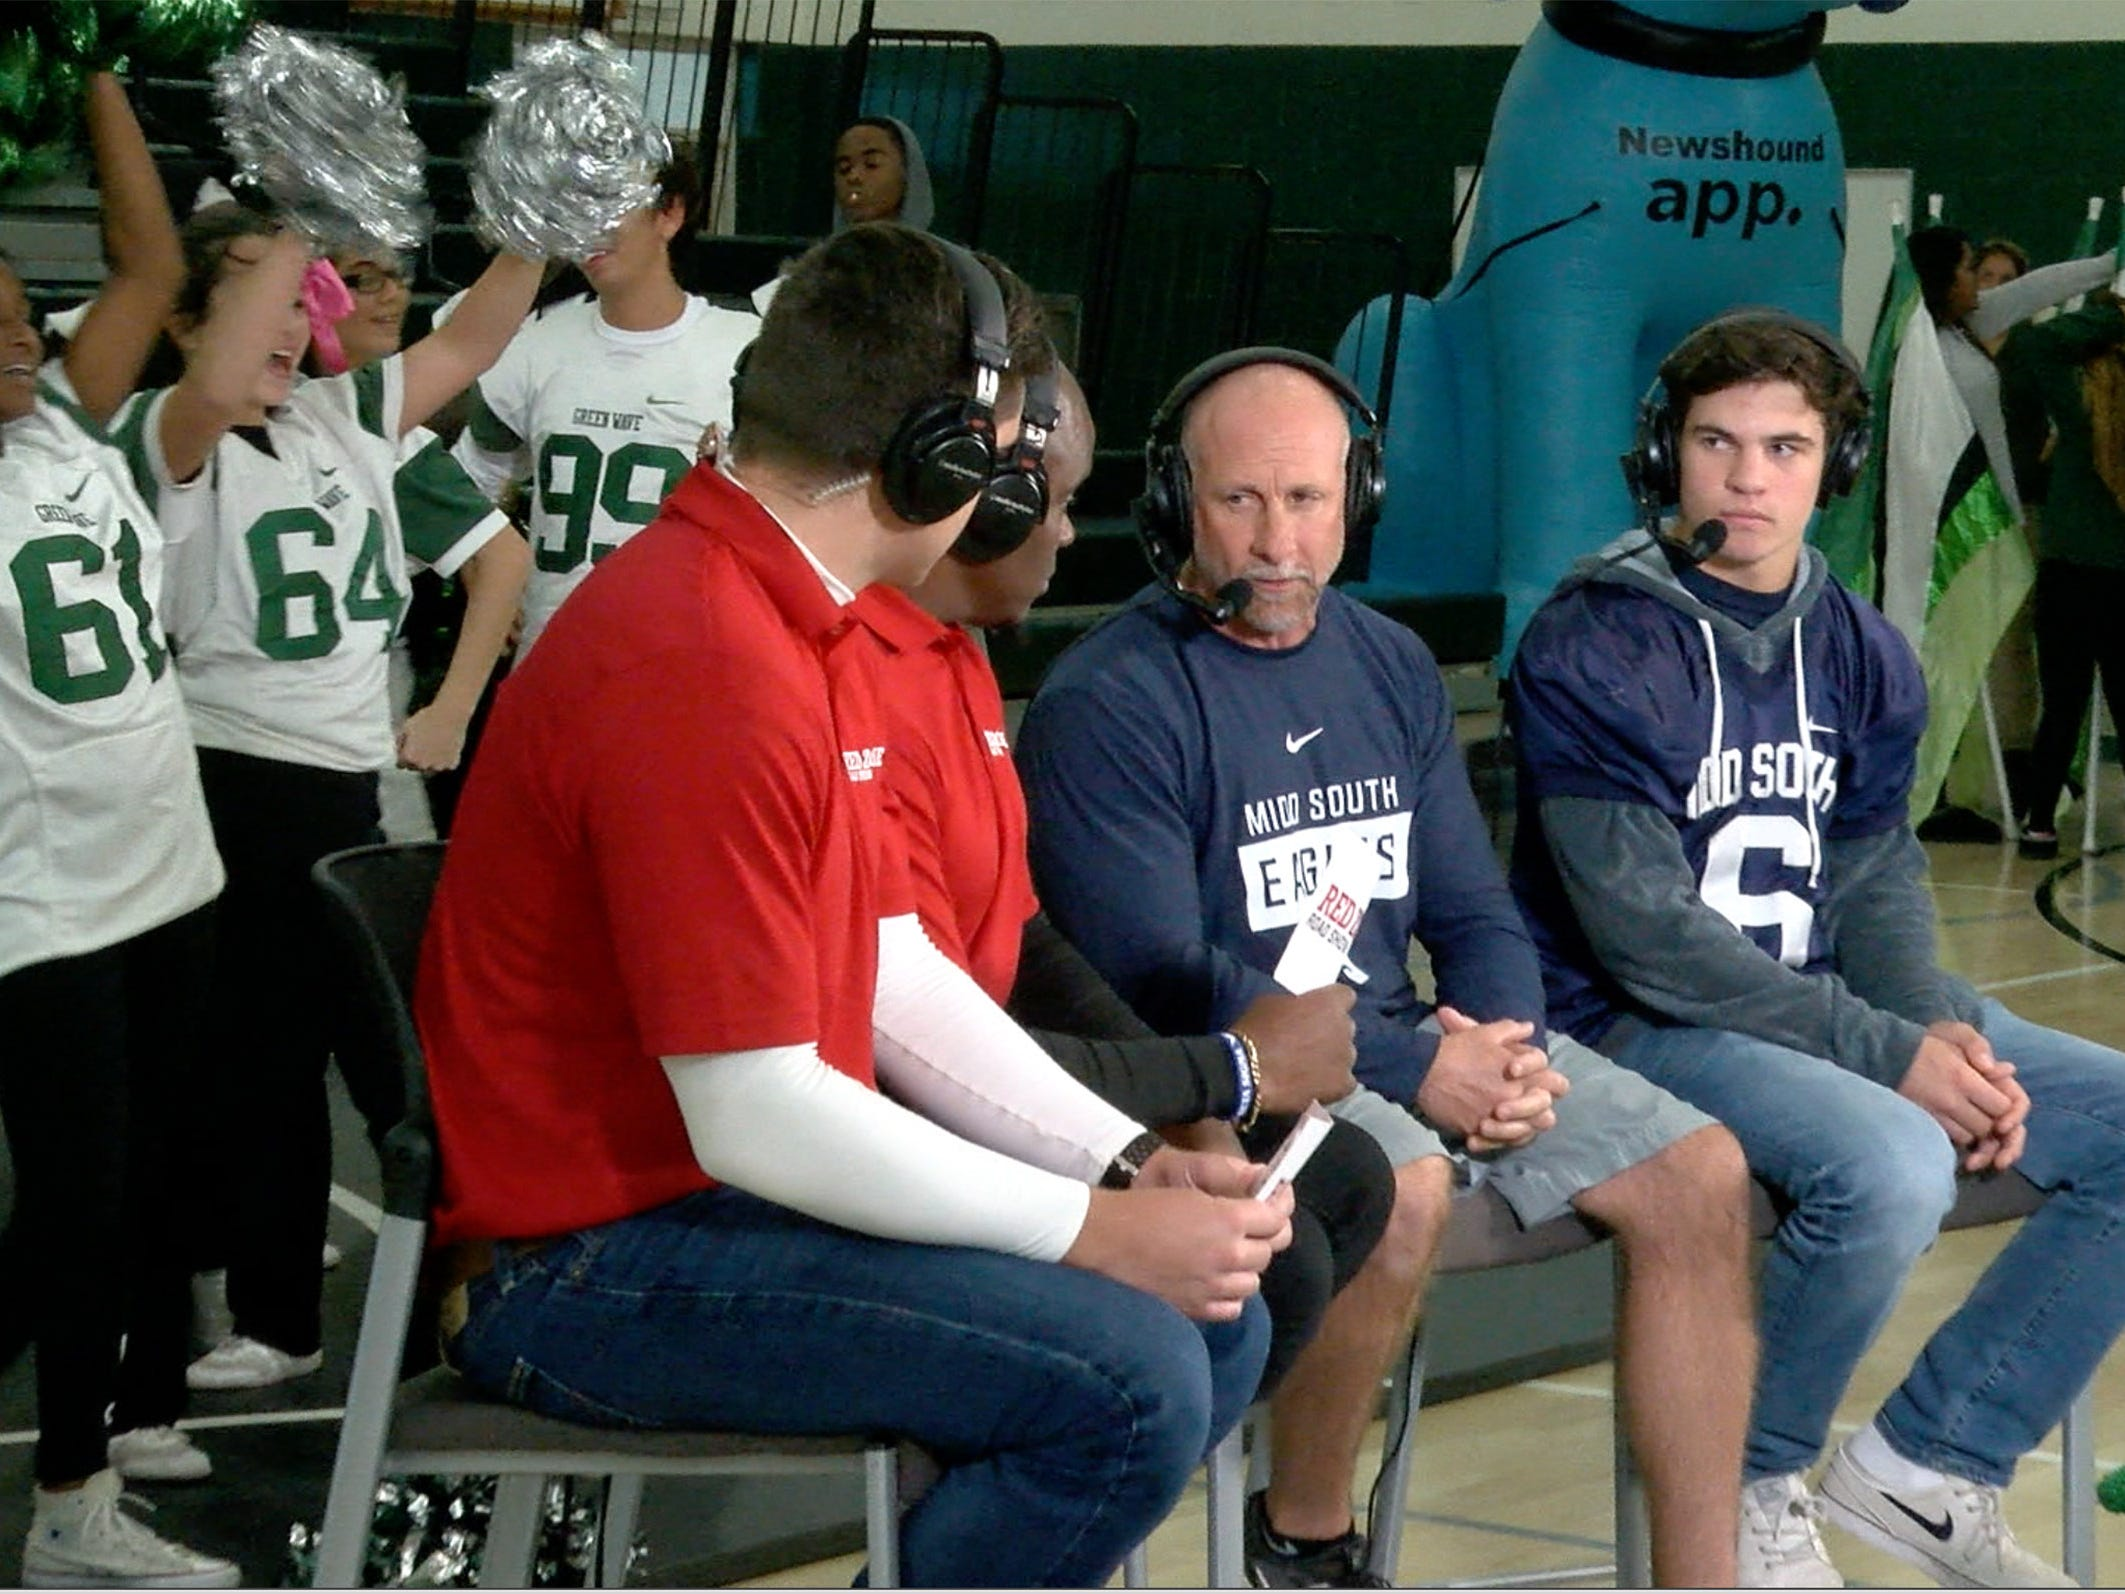 Middletown South Coach Steve Antonucci and quarterback Trevor Brey appear on the Red Zone Road show taped at Long Branch High School Monday, November 5, 2018.